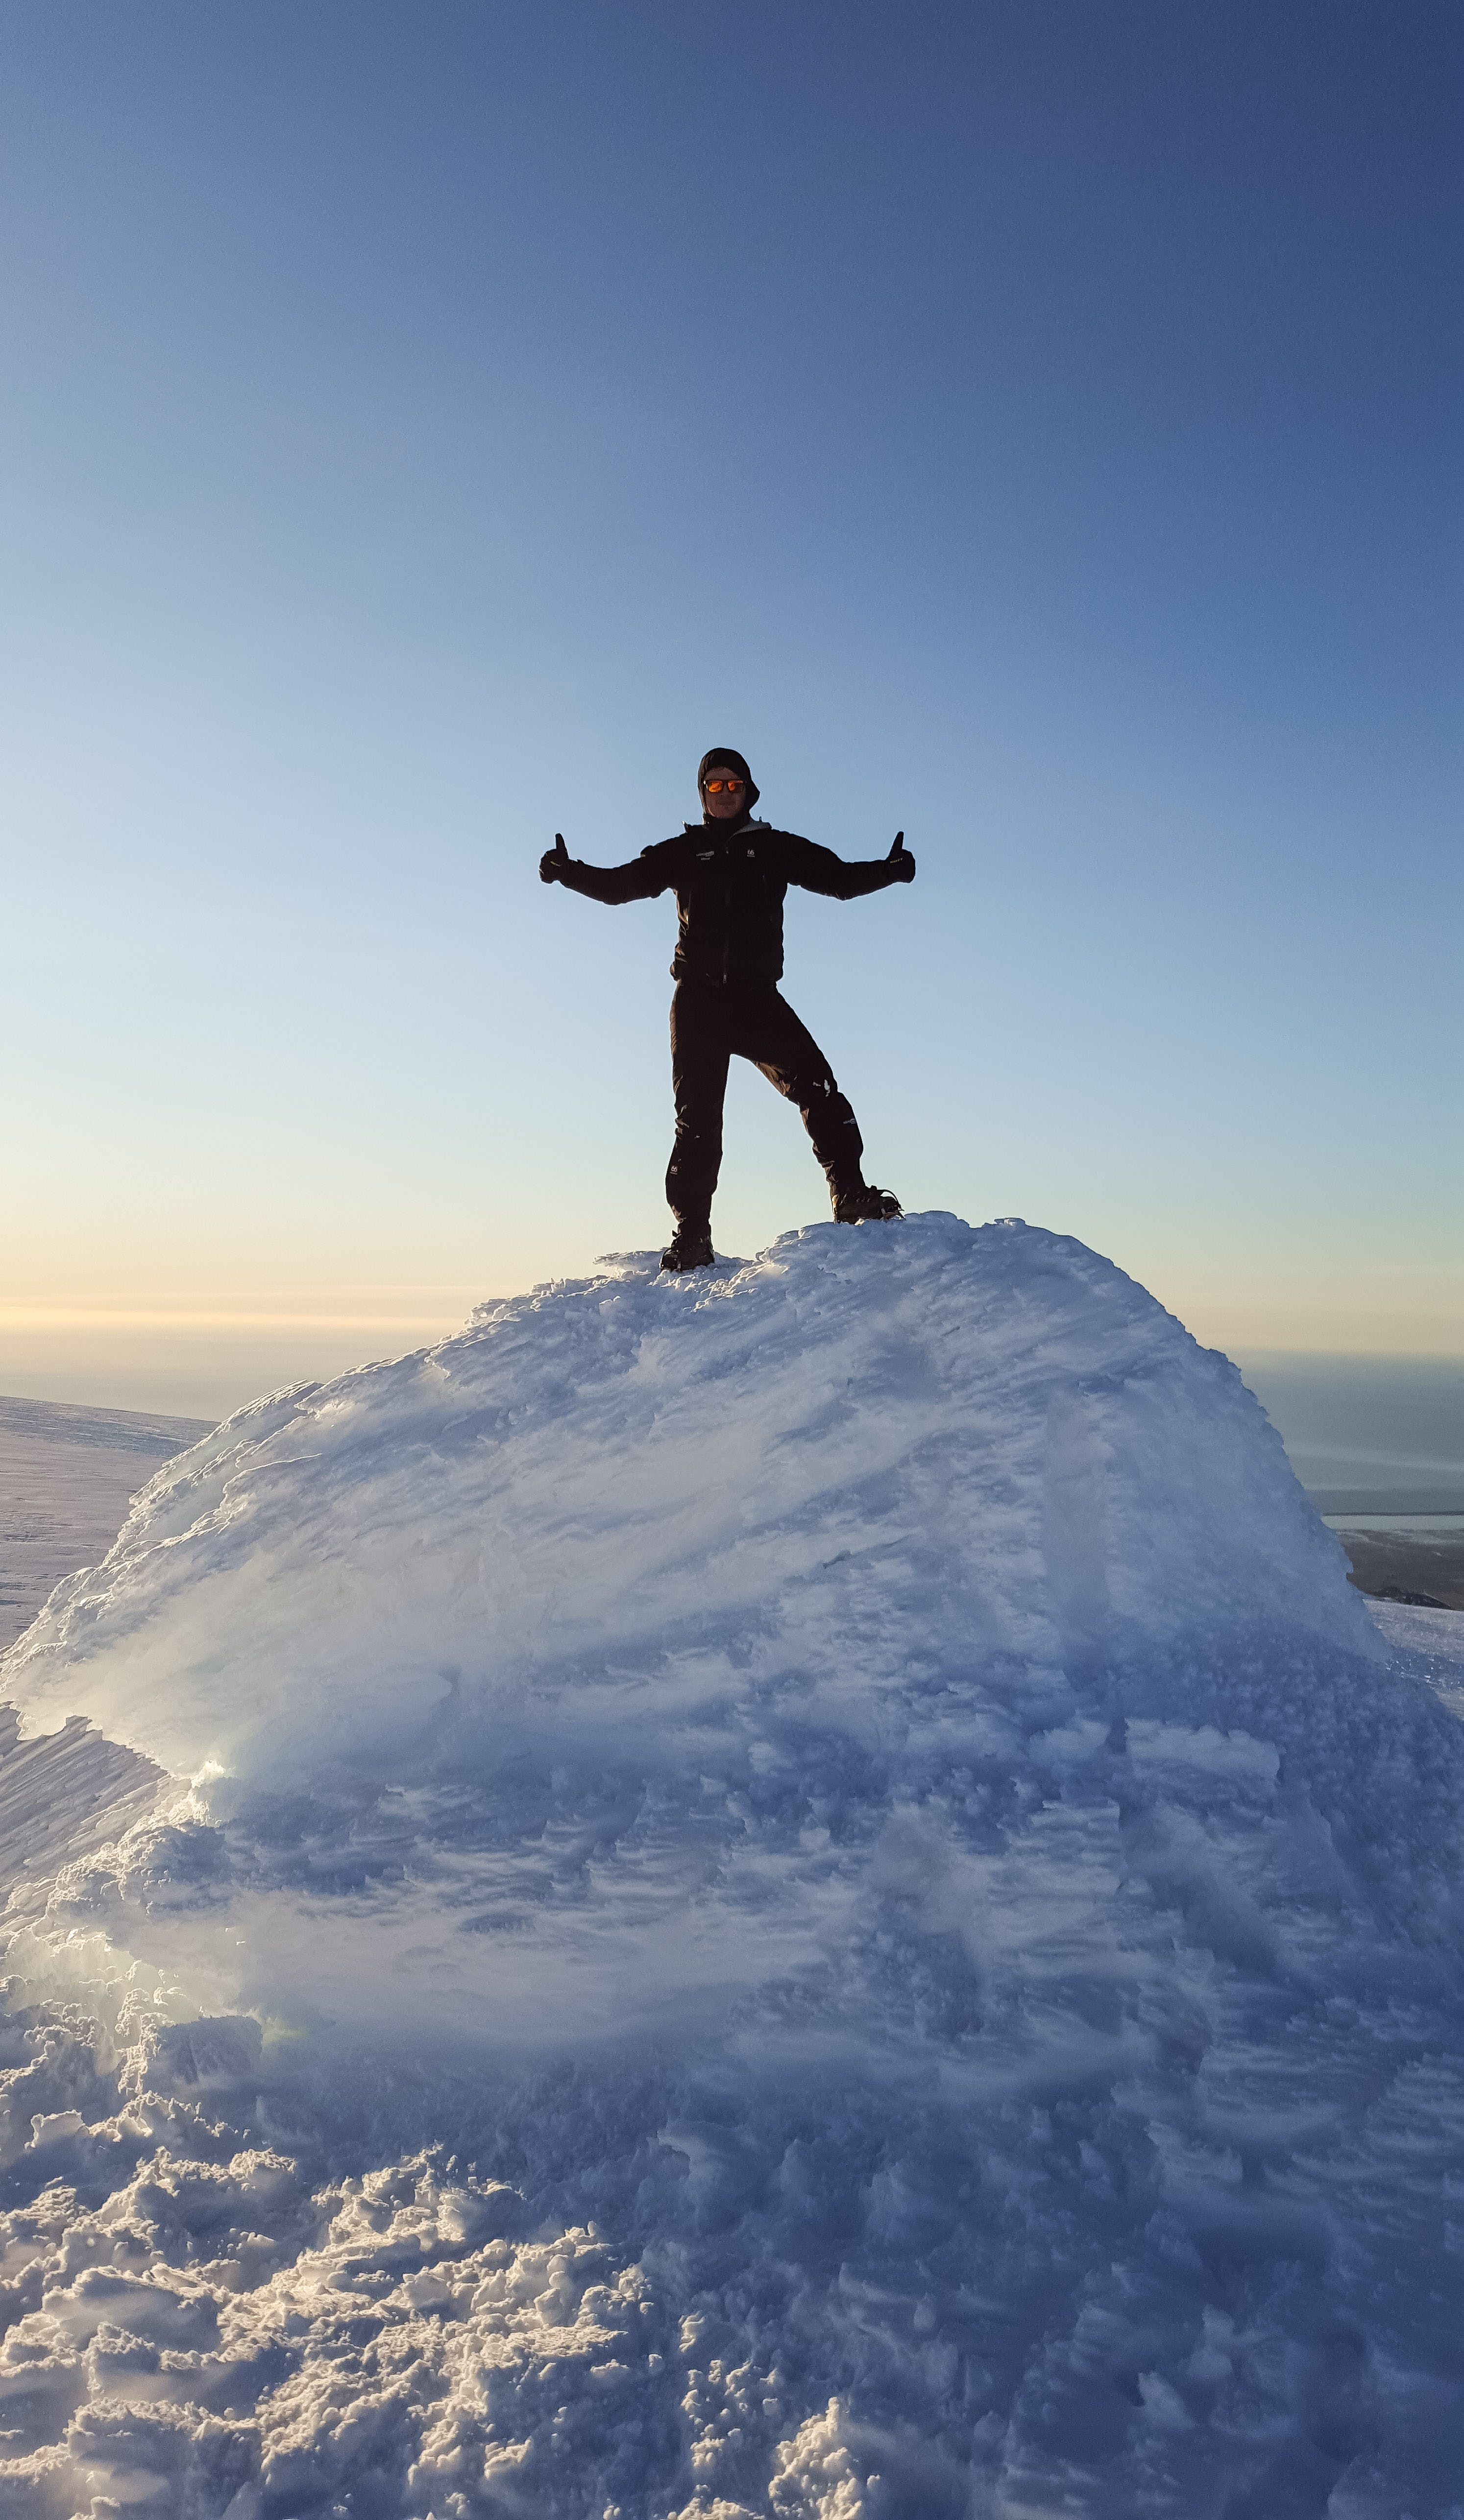 Explore the summit of the notorious Eyjafjallajökull glacier and volcano.